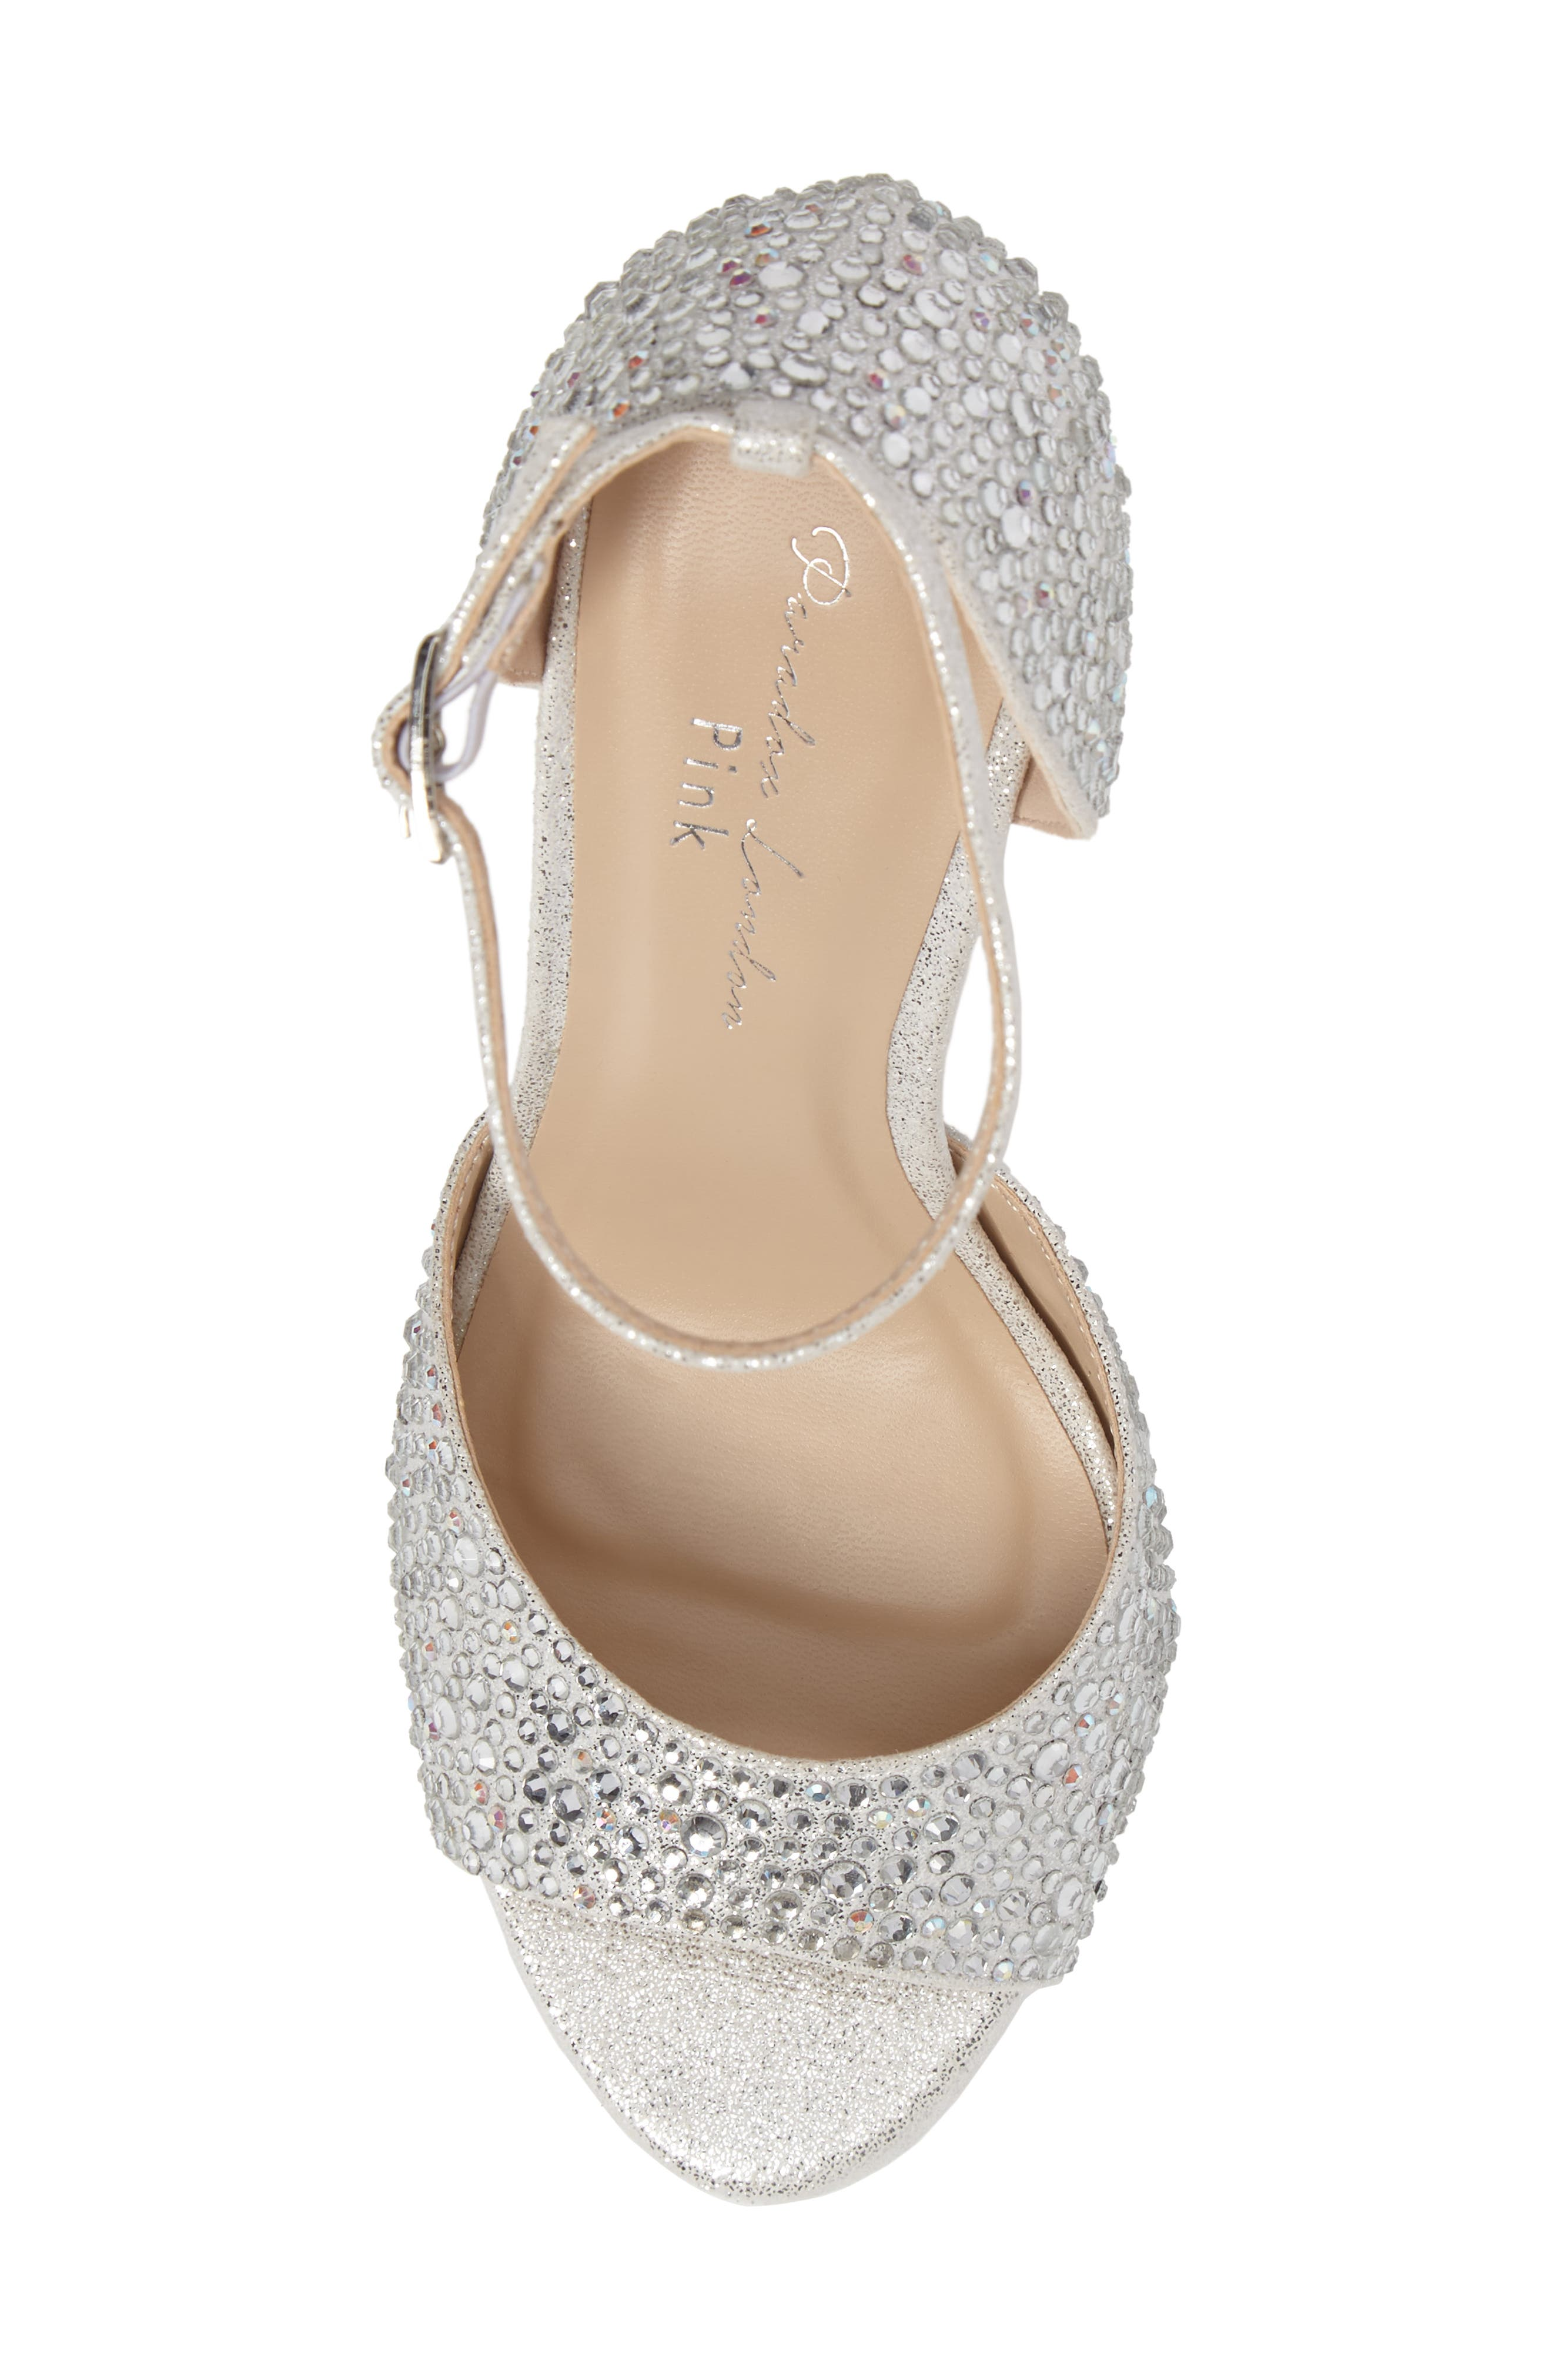 Mira Embellished Glitter Sandal,                             Alternate thumbnail 5, color,